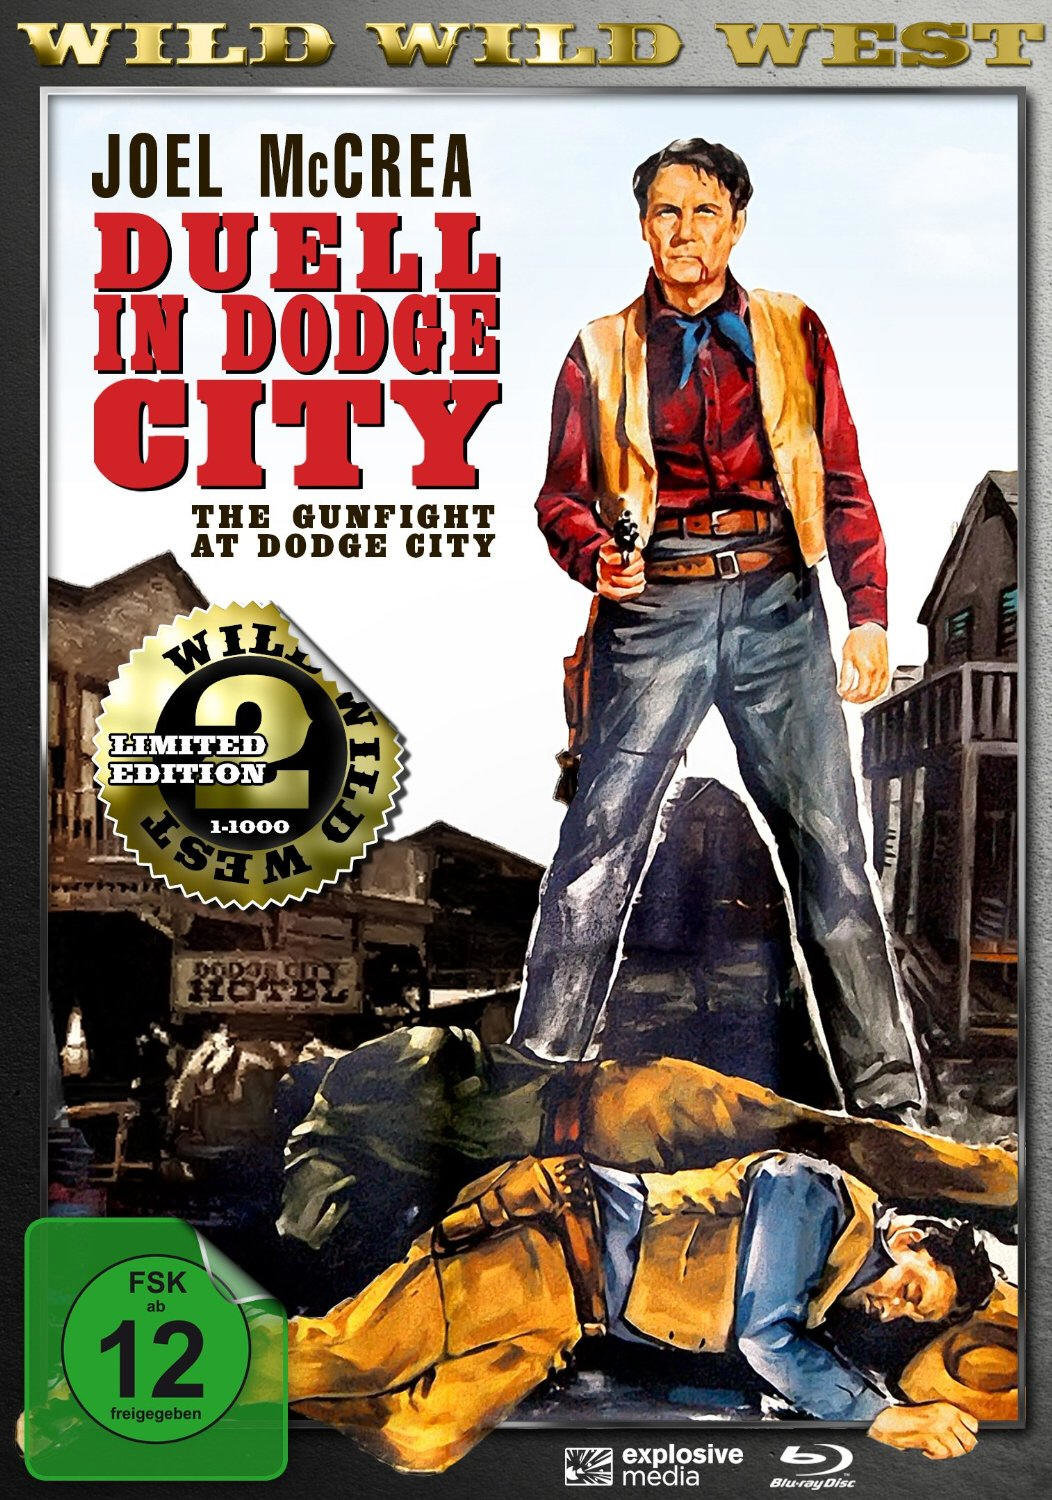 Duell in Dodge City (1959) - (Wild Wild West, Limited Edition, Blu-ray & DVD)